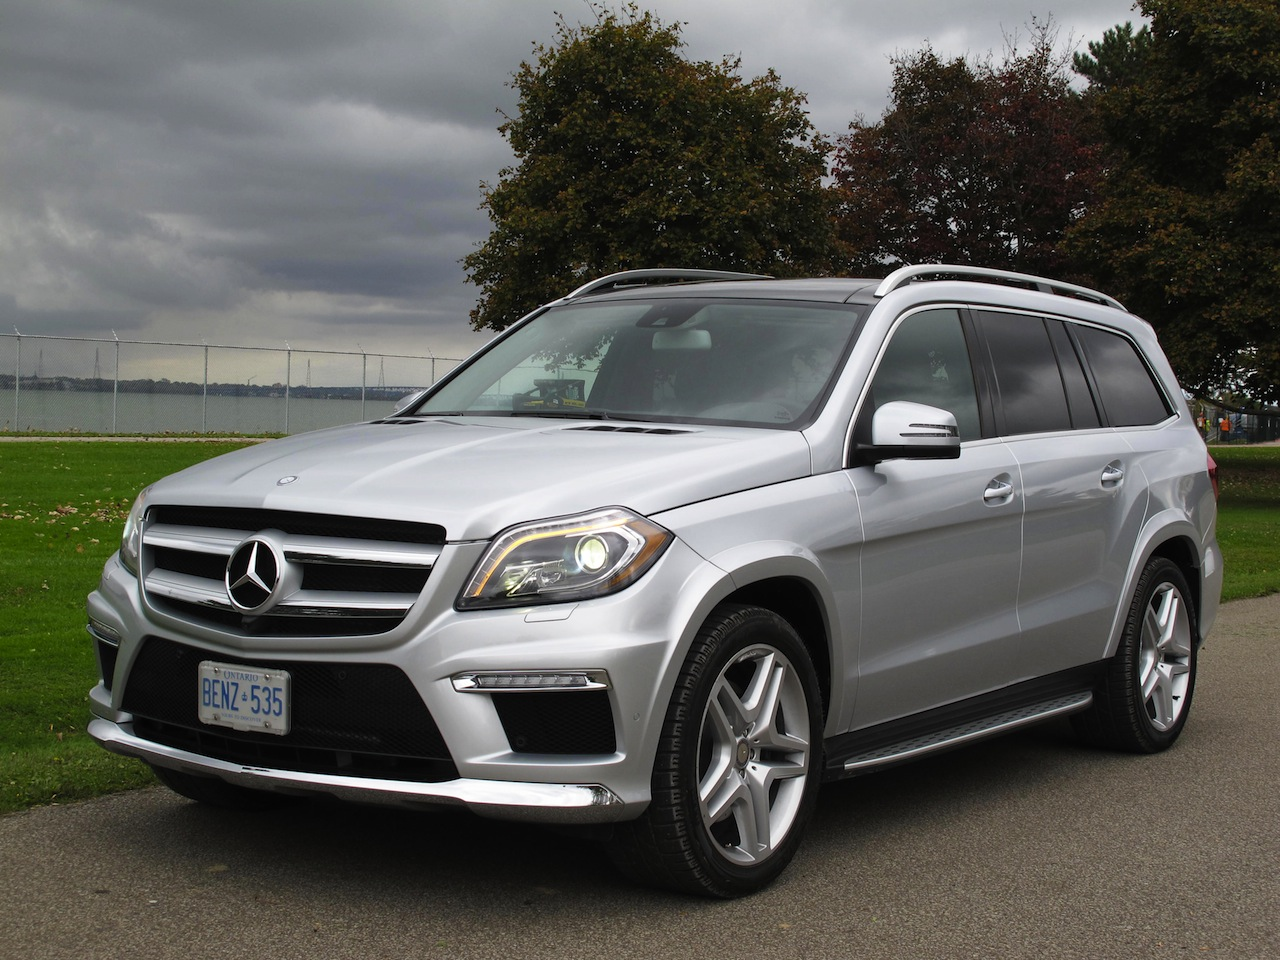 2014 mercedes benz gl350 bluetec photo gallery cars for Mercedes benz bluetec diesel